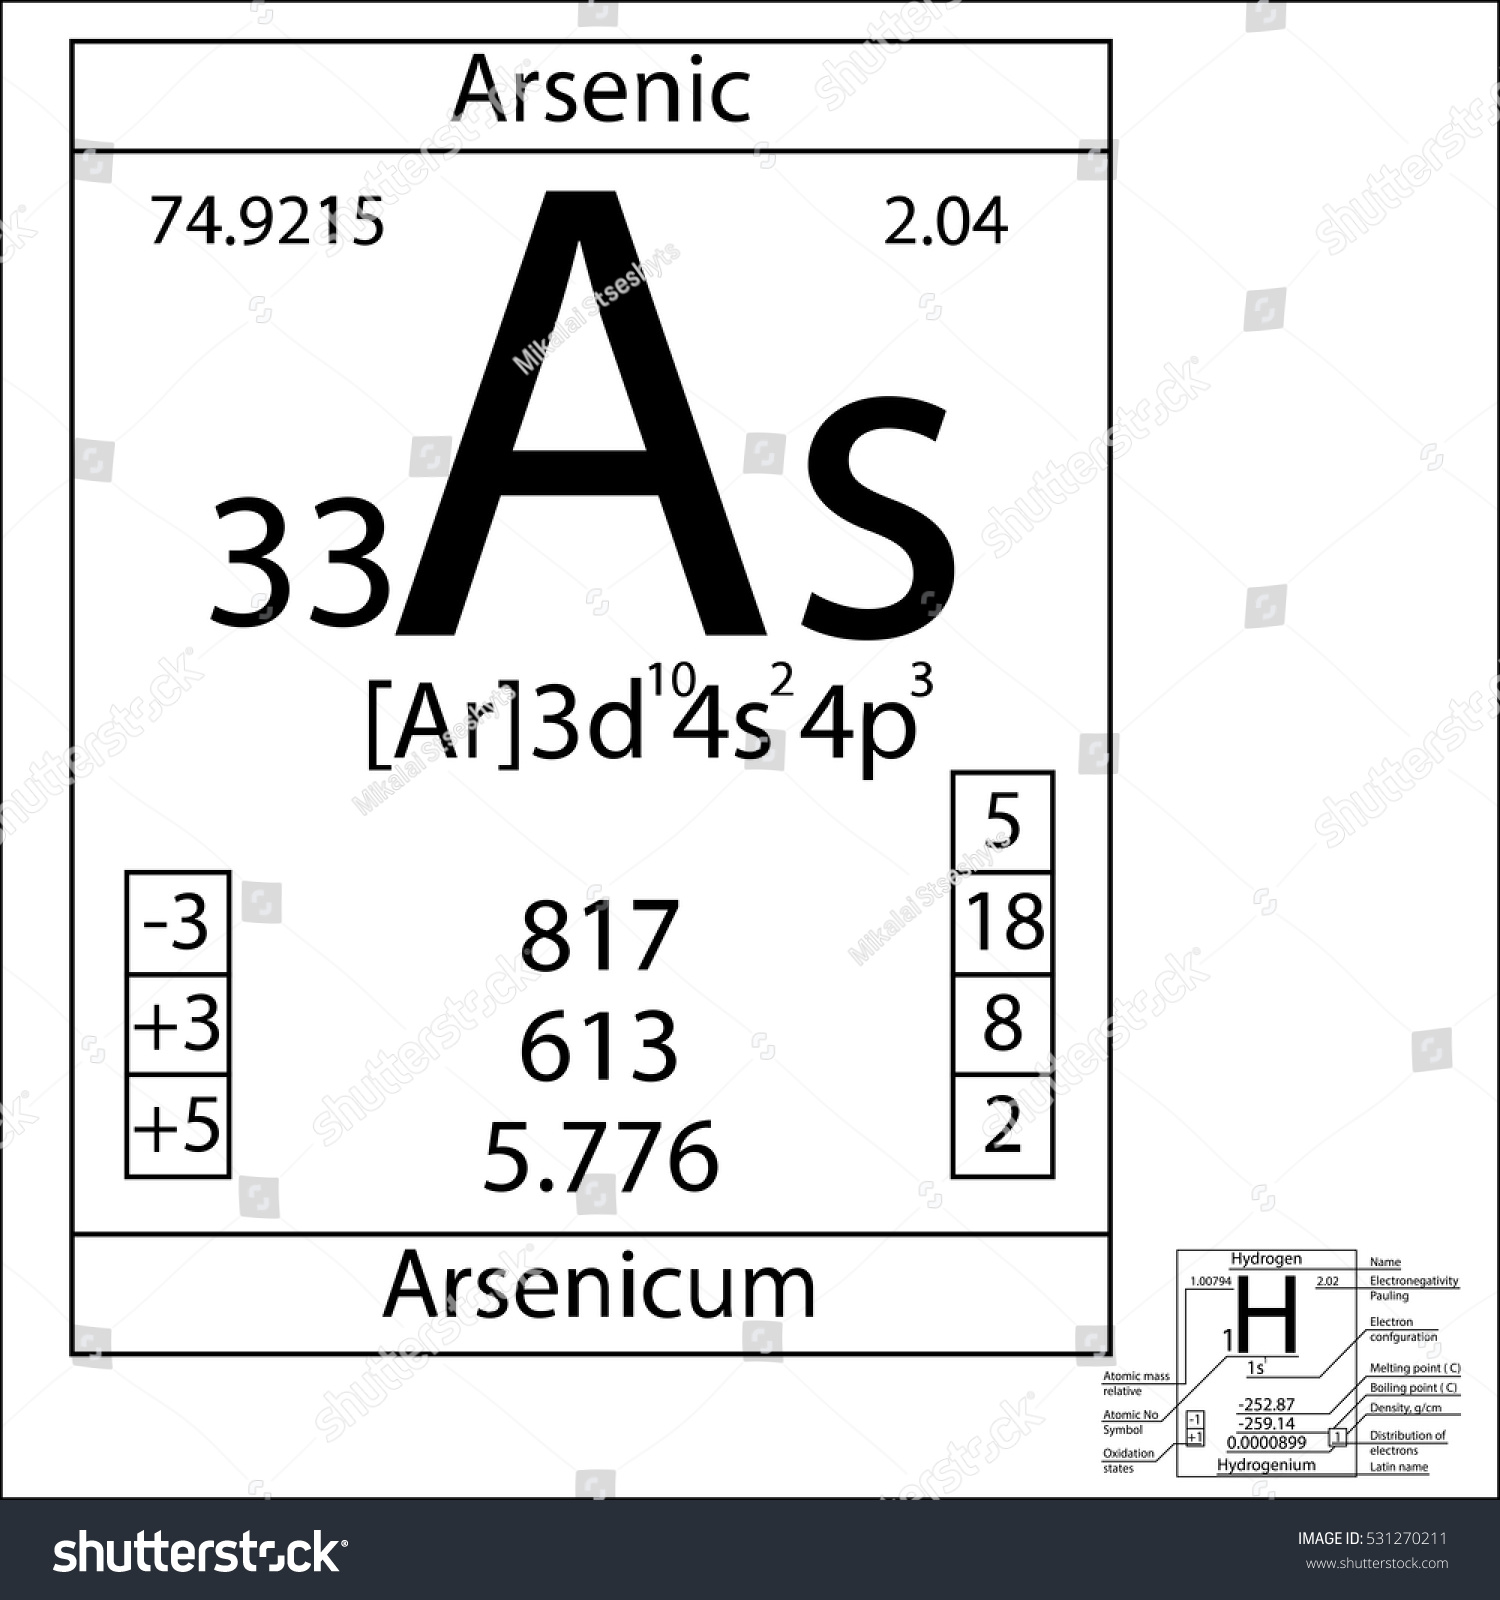 Periodic table element arsenic basic properties stock vector the periodic table element arsenic with the basic properties biocorpaavc Image collections